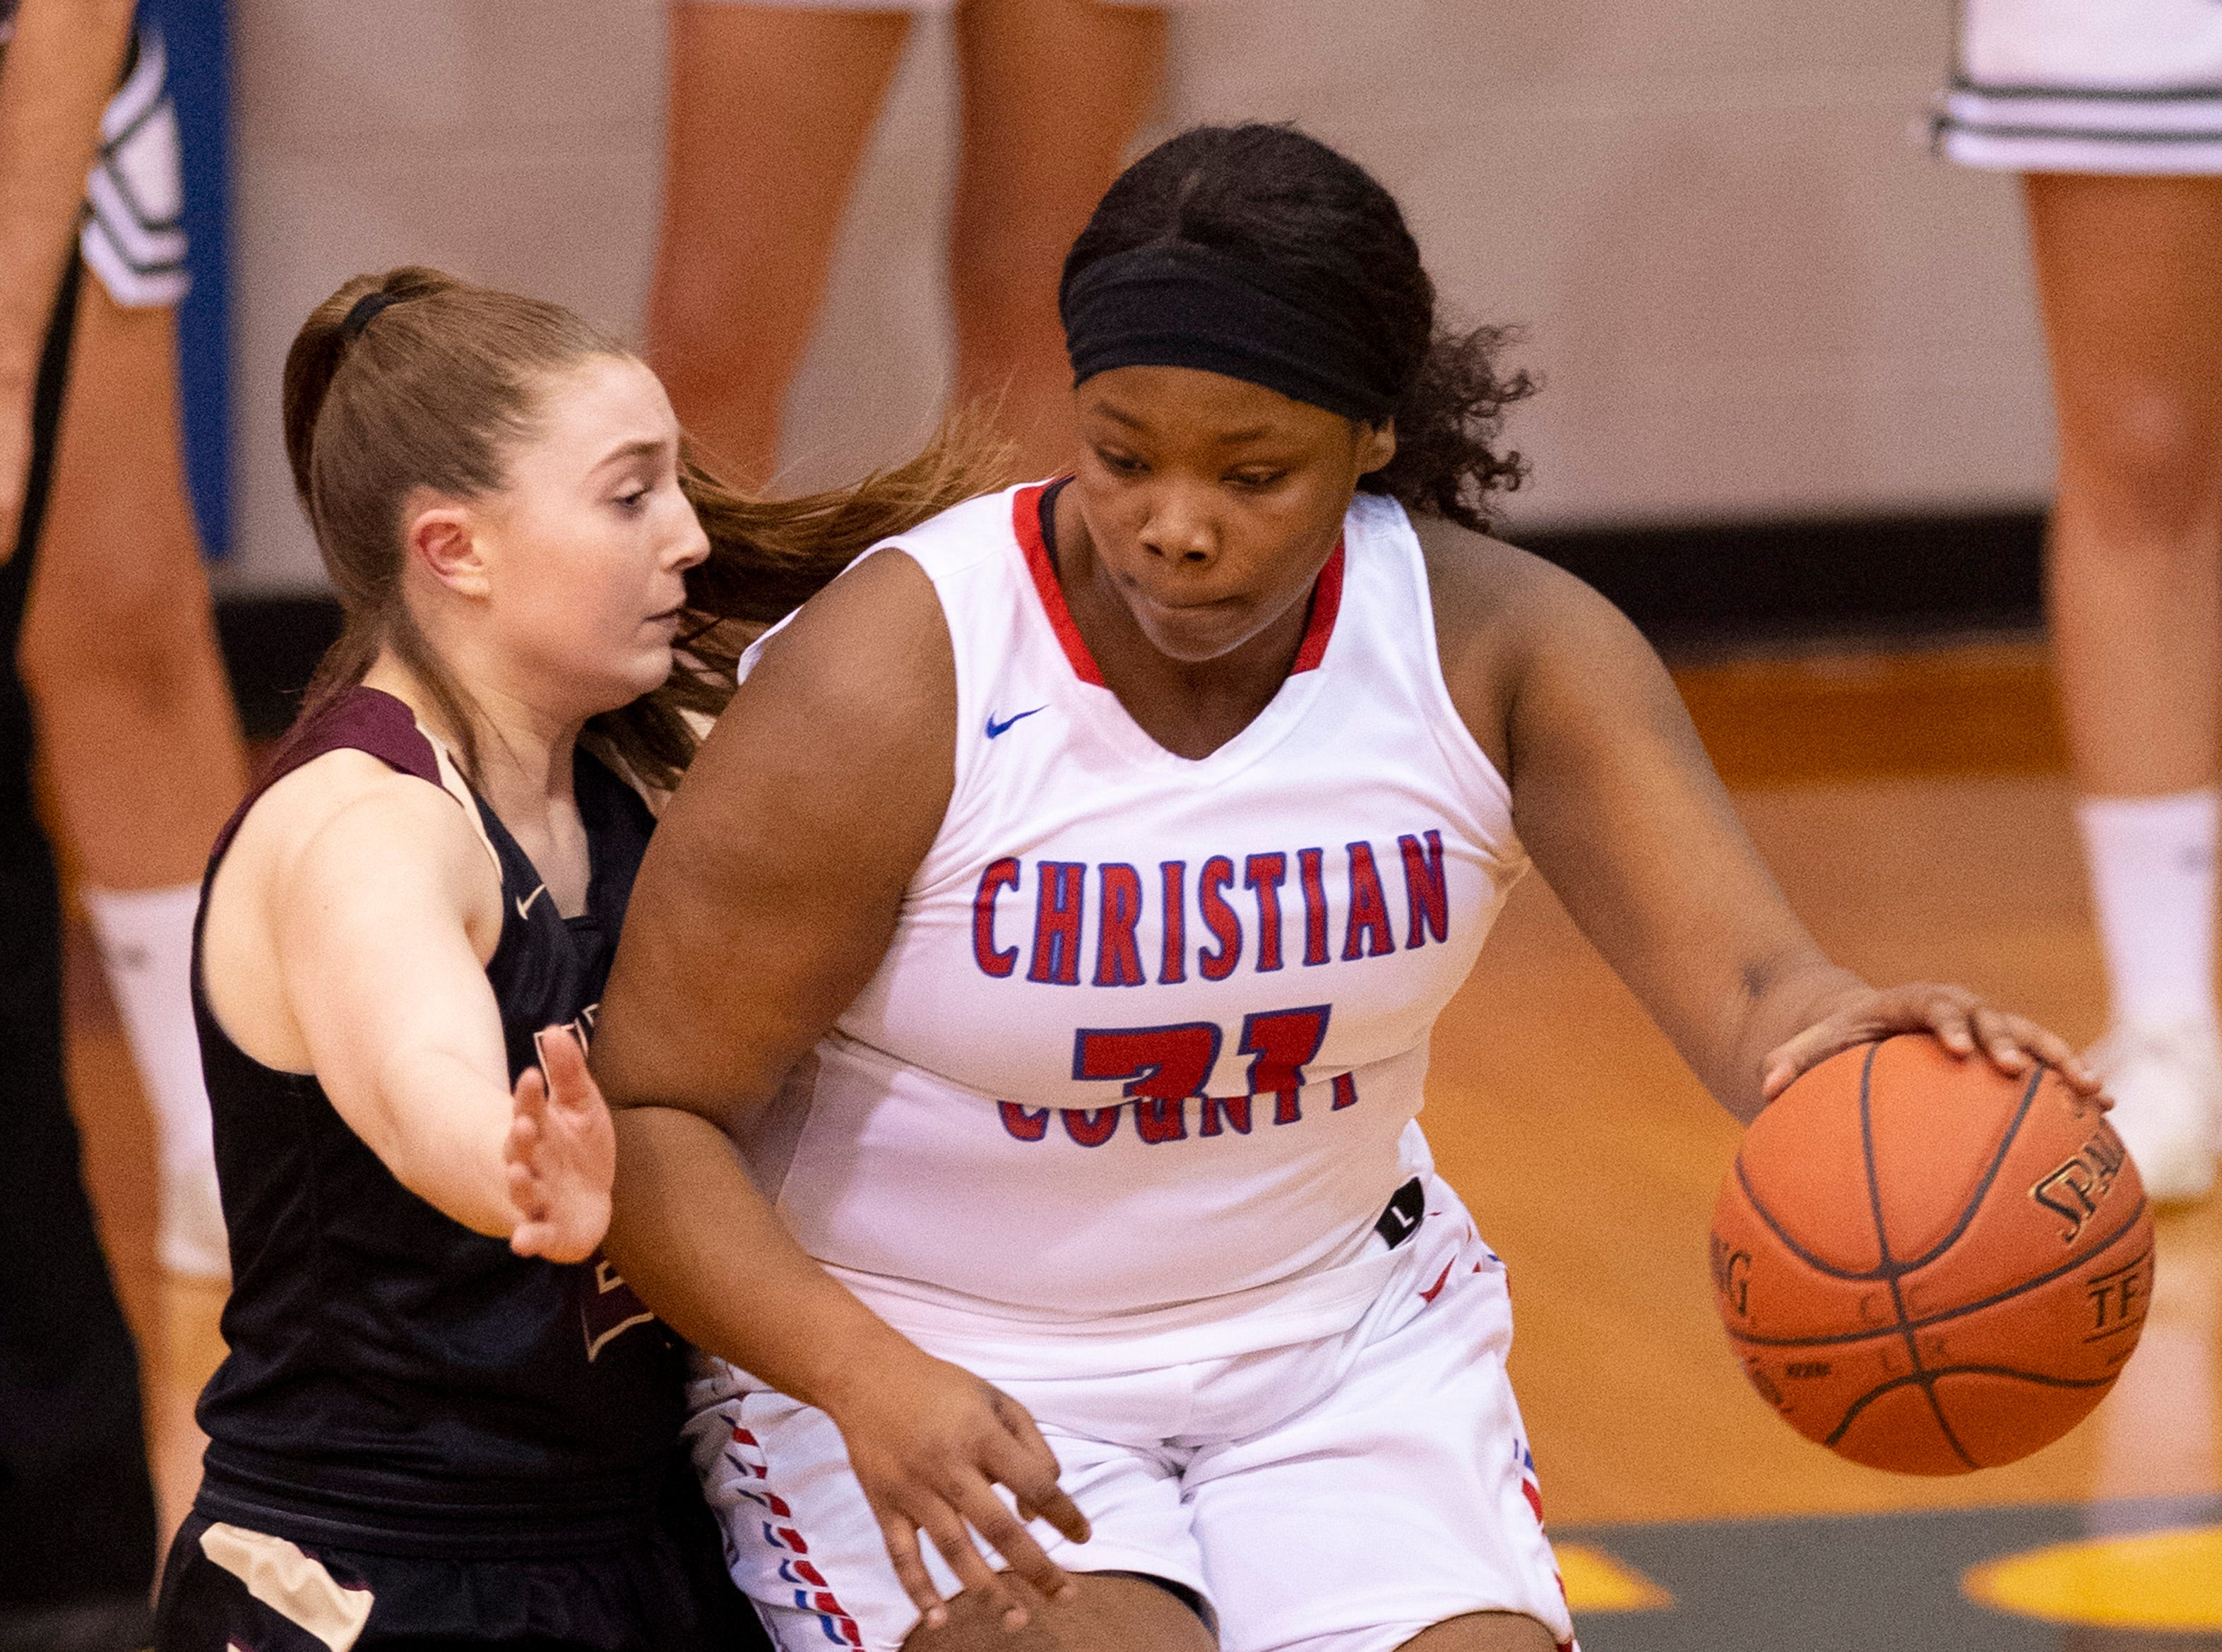 Webster County's Mariah Austin (21) defends Christian's Trinity McGee (31) during the Girls Region Tournament semifinals at the Rocket Arena in Marion, Ky., Monday night.